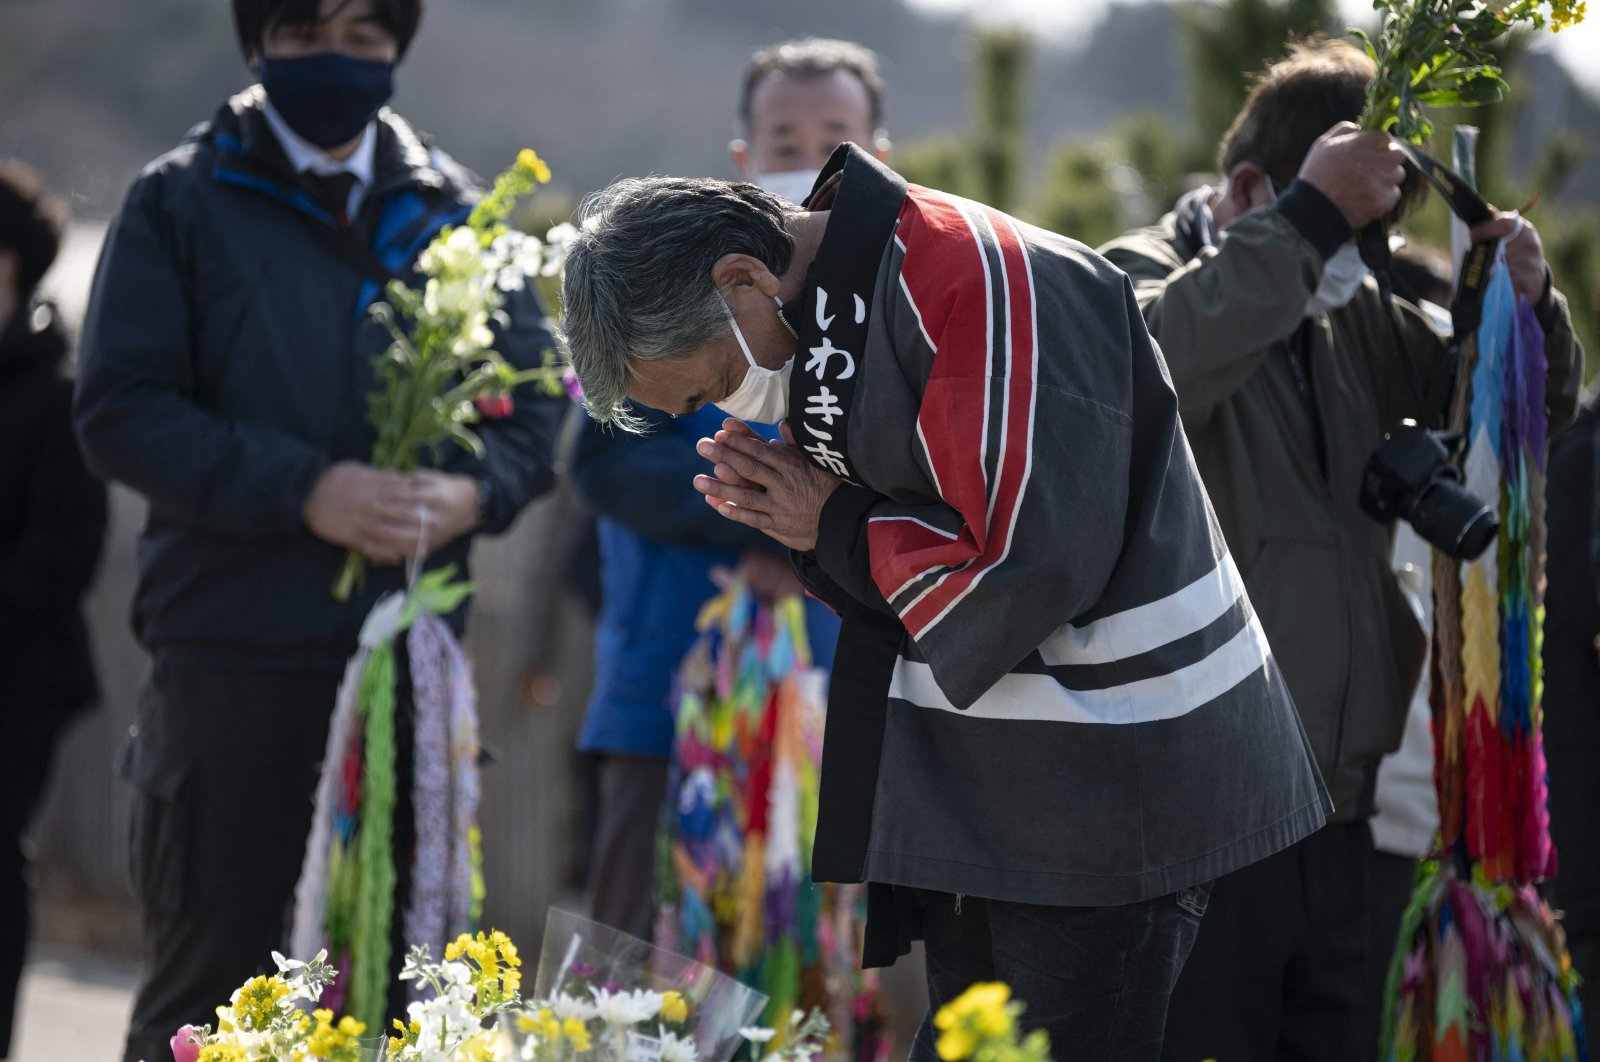 A man prays in front of the sea in Hisanohama, Fukushima prefecture on the 10th anniversary of the 9.0 magnitude earthquake which triggered a tsunami and nuclear disaster, Japan, March 11, 2021. (AFP)